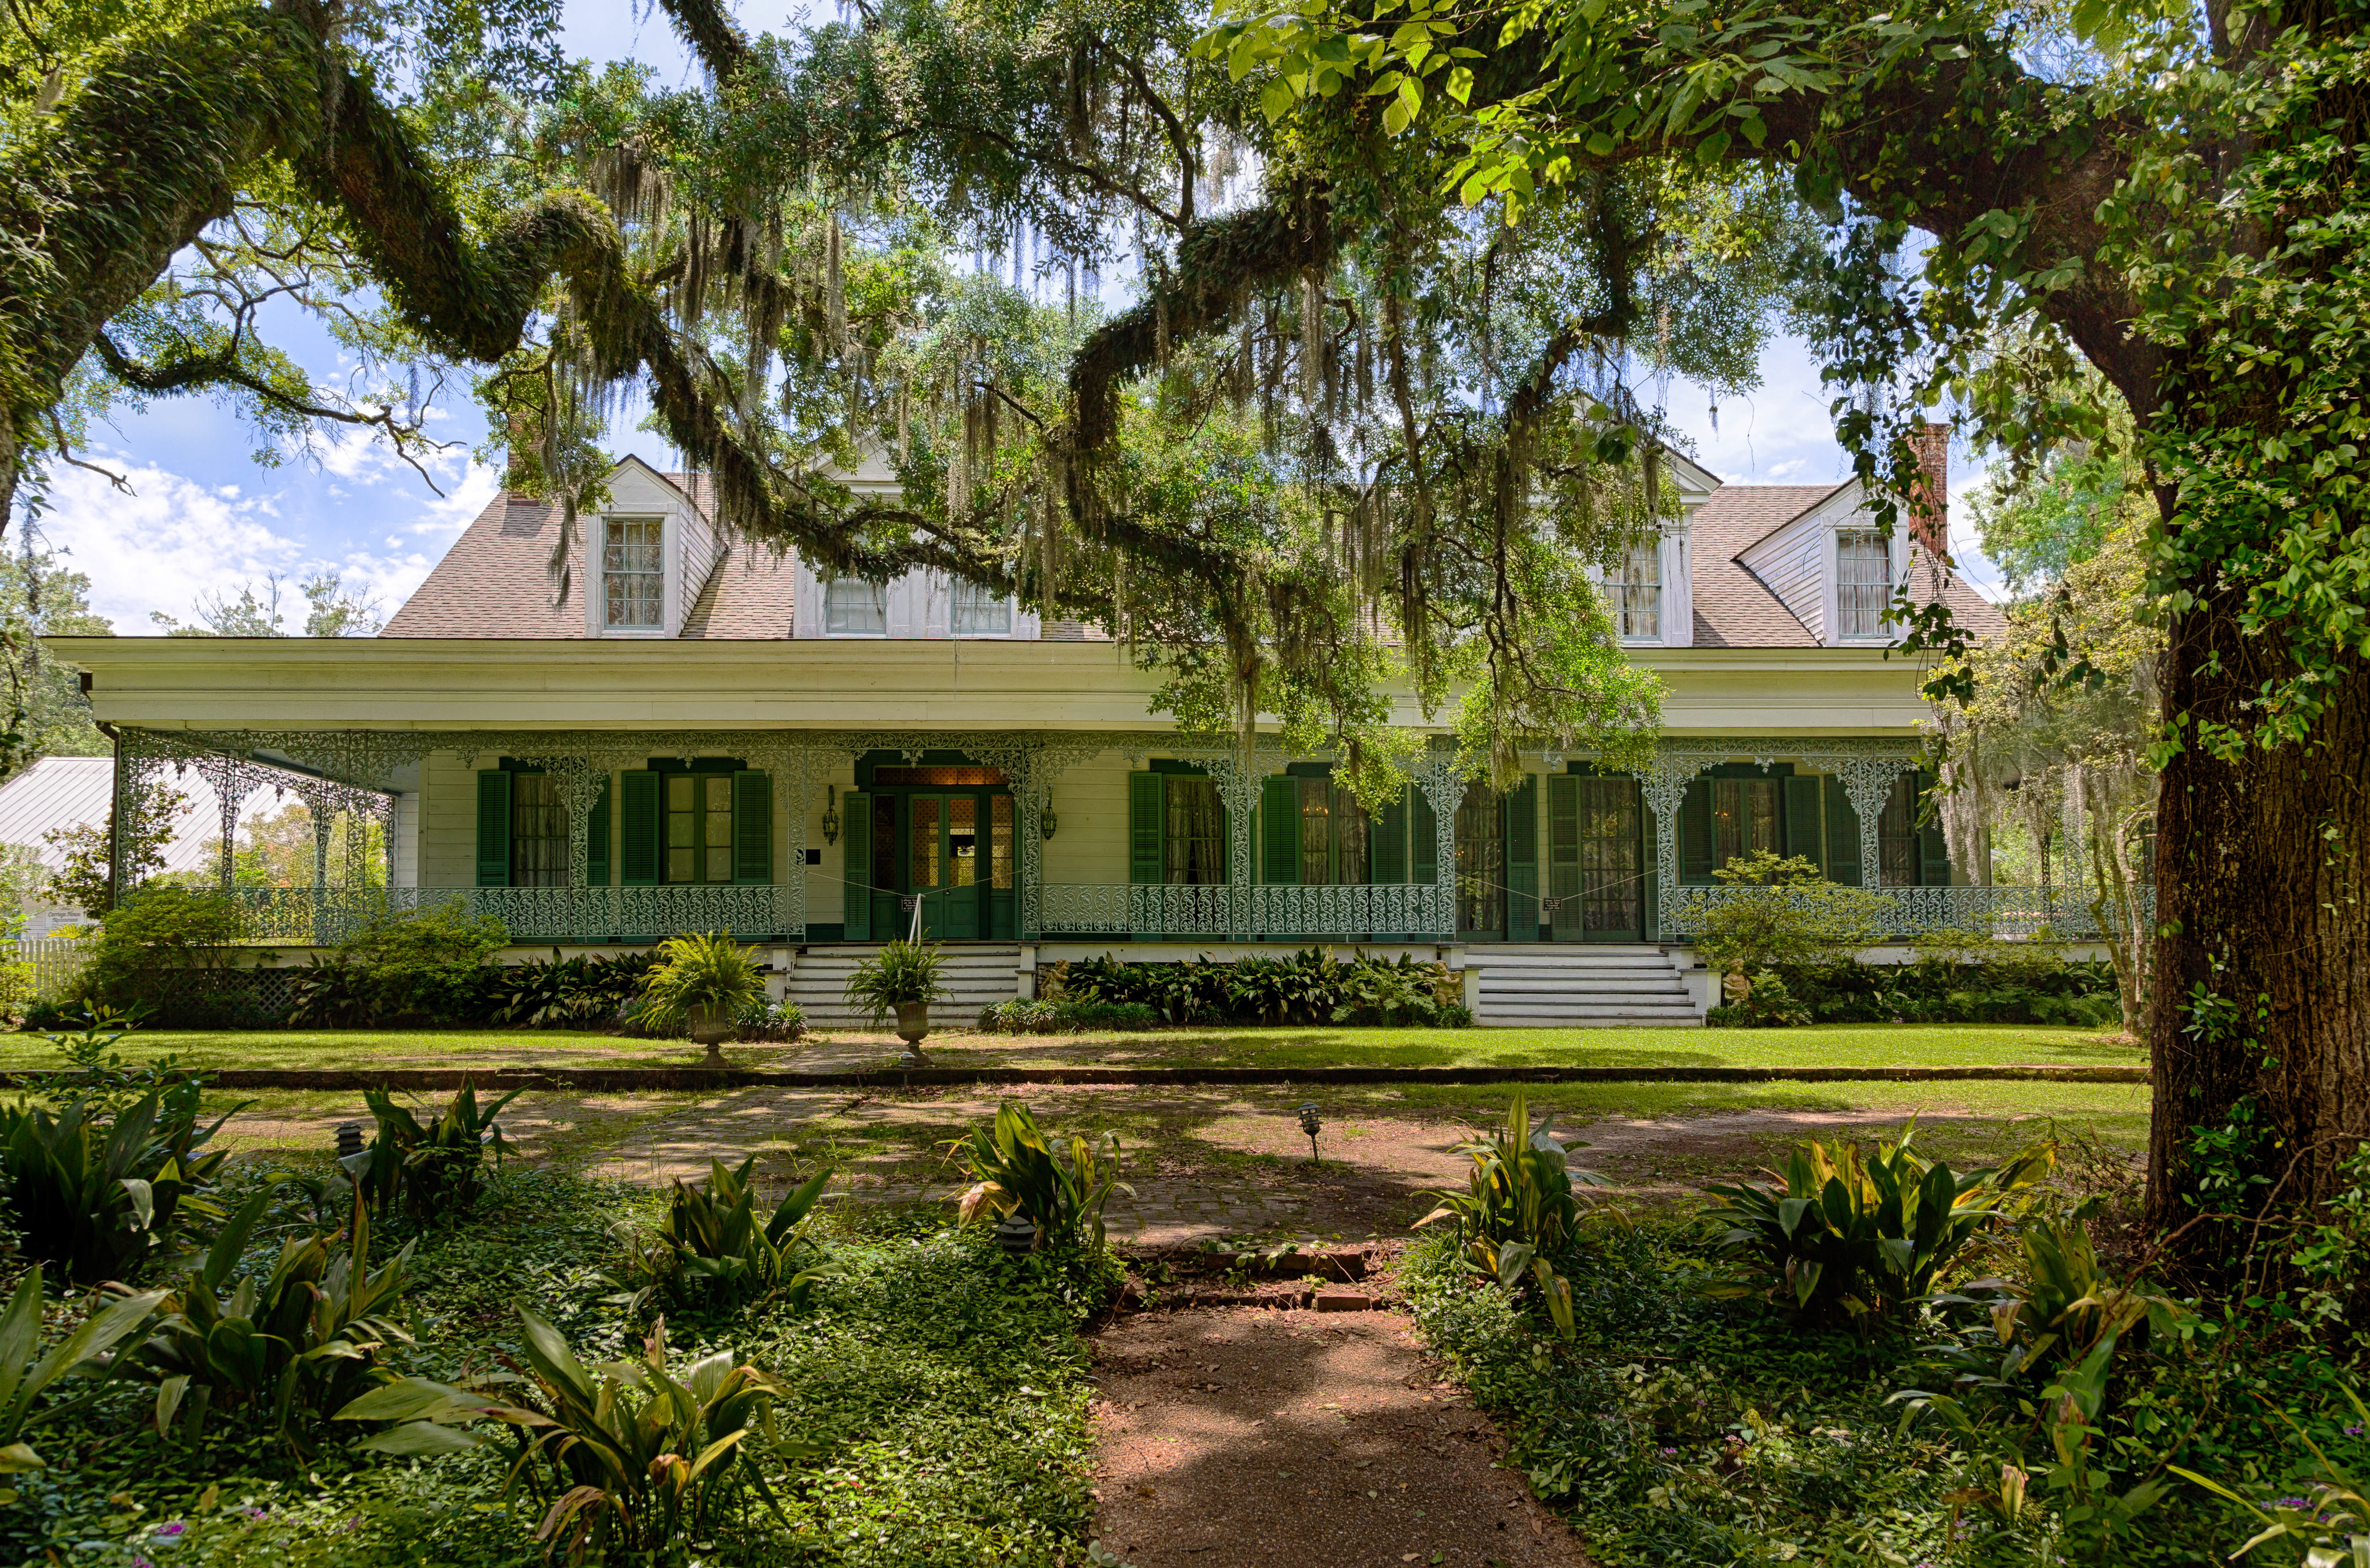 10 Most Haunted Places of the South | Country at Heart